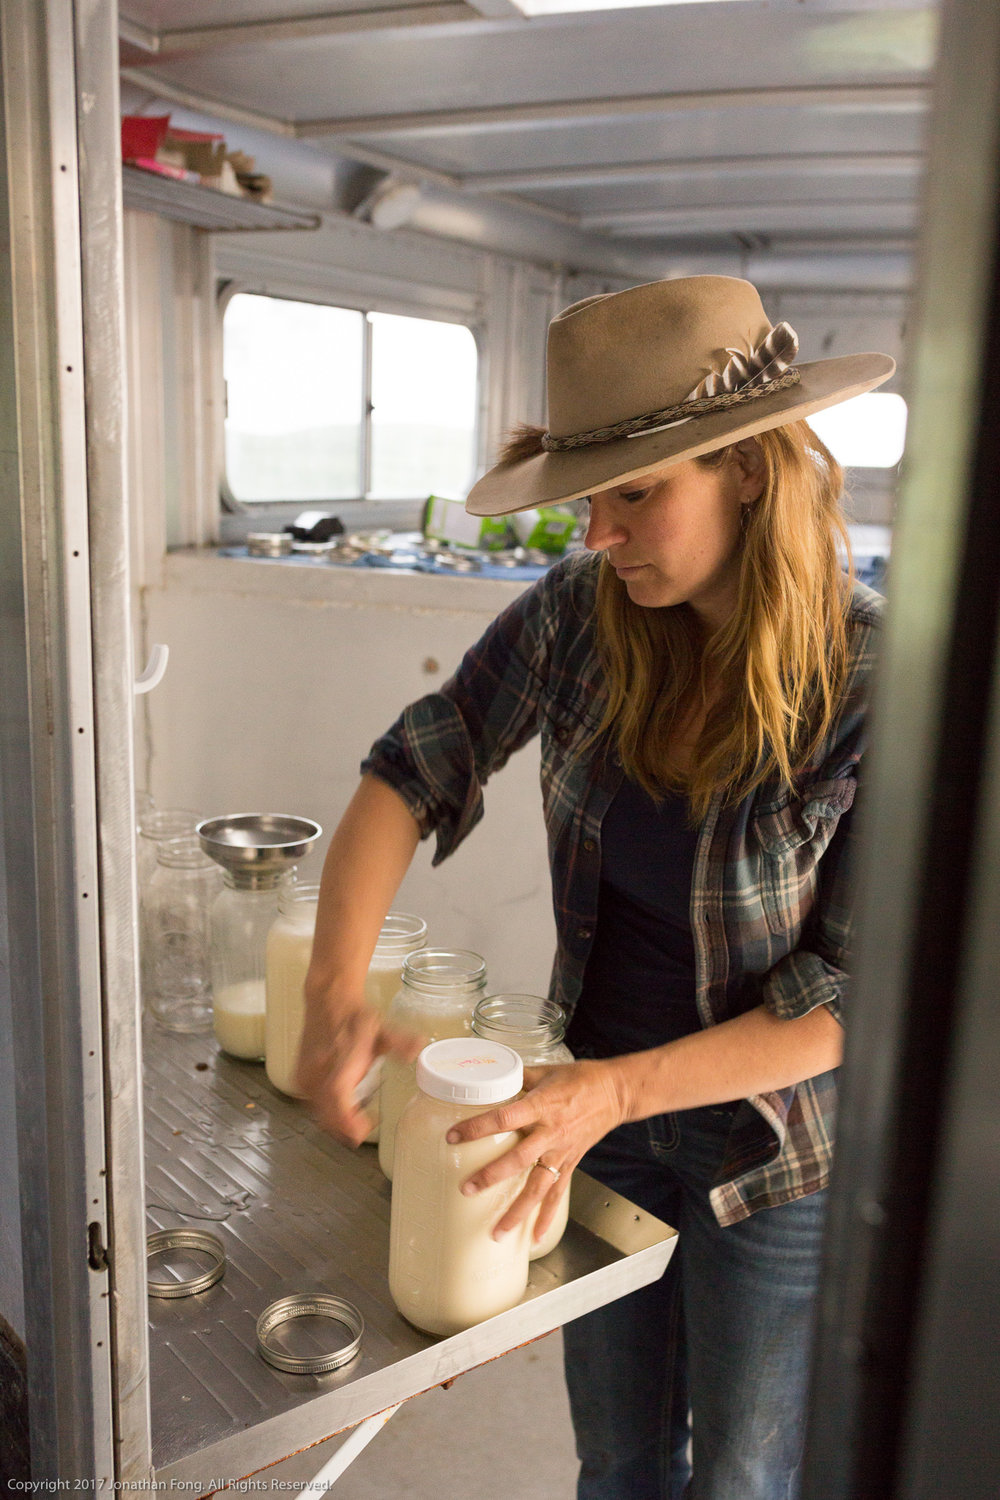 Doniga begins her day by packing raw cow's milk for their CSA deliveries. CSA, or Community Supported Agriculture, is a powerful connection between a farmer and their customers. It not only supports the Markegard's business, but also enables them to share a high quality product with the community and nurture families like theirs.